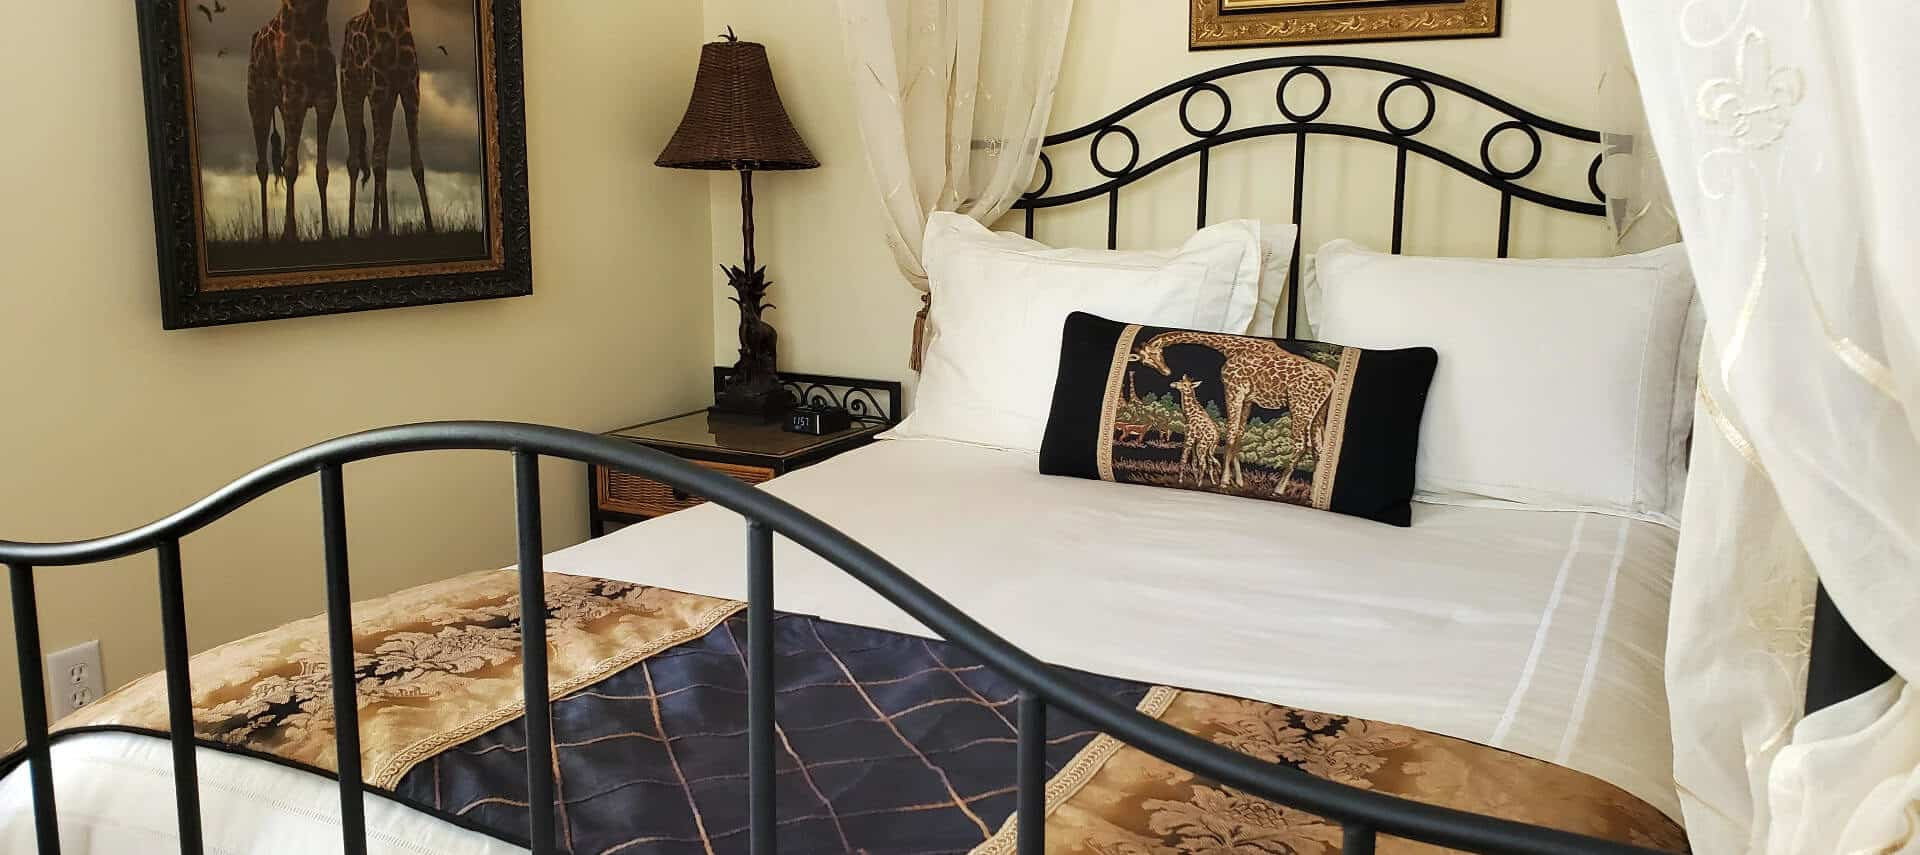 Wrought iron curtained queen bed near night stand with lamp